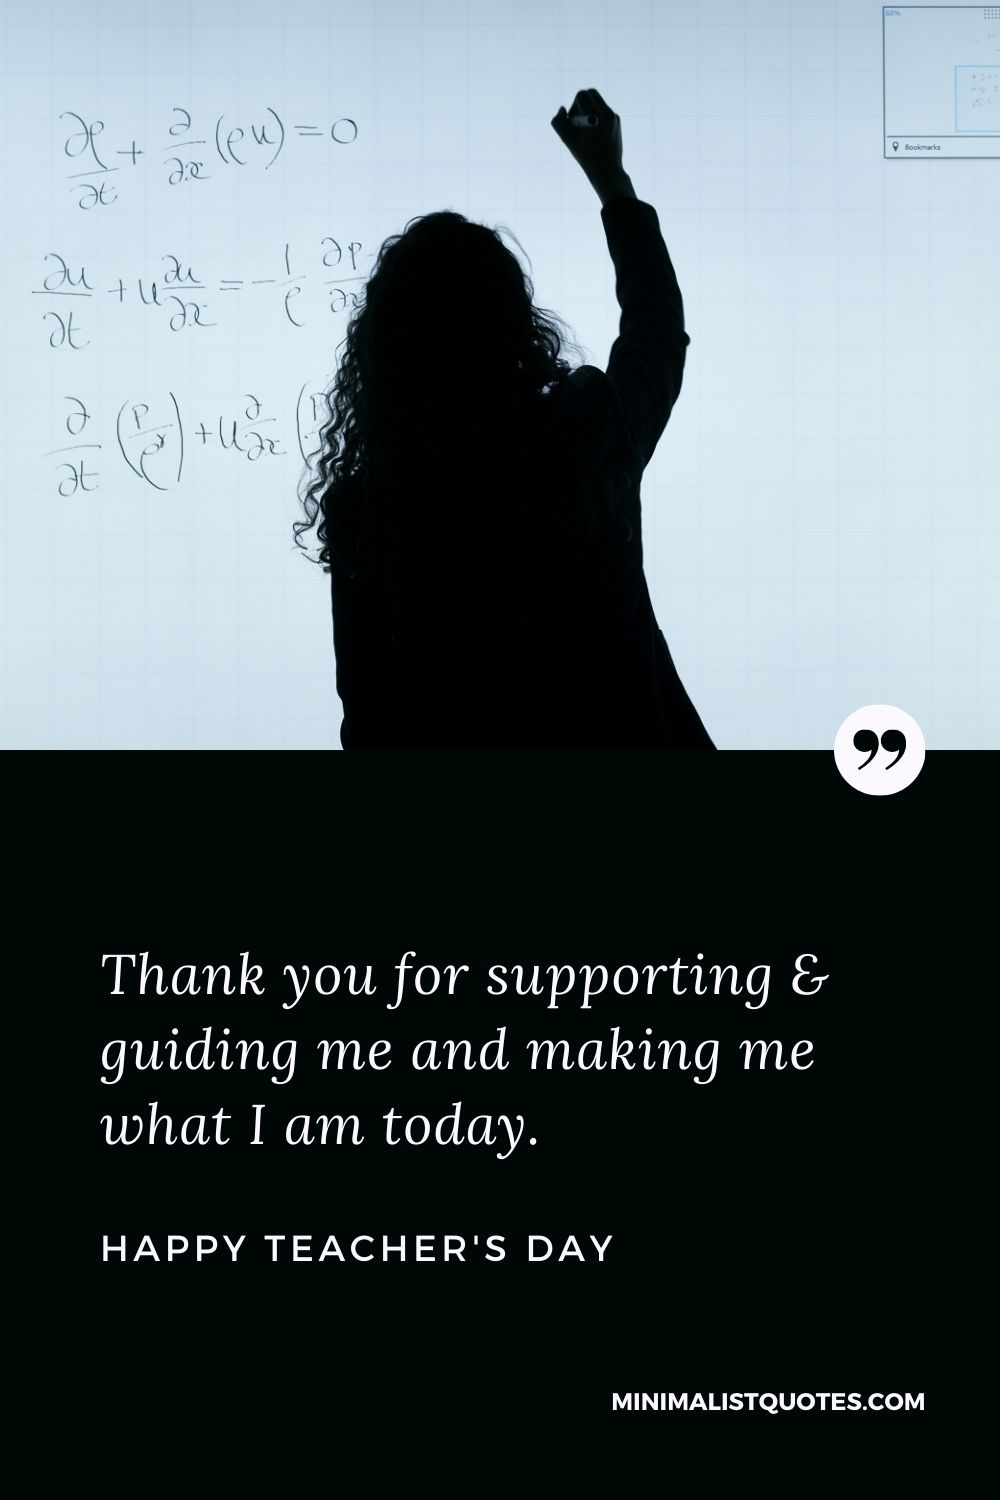 Teacher's Day Wish & Message With HD Image: Thank you for supporting & guiding me and making me what I am today. Happy Teacher's Day!